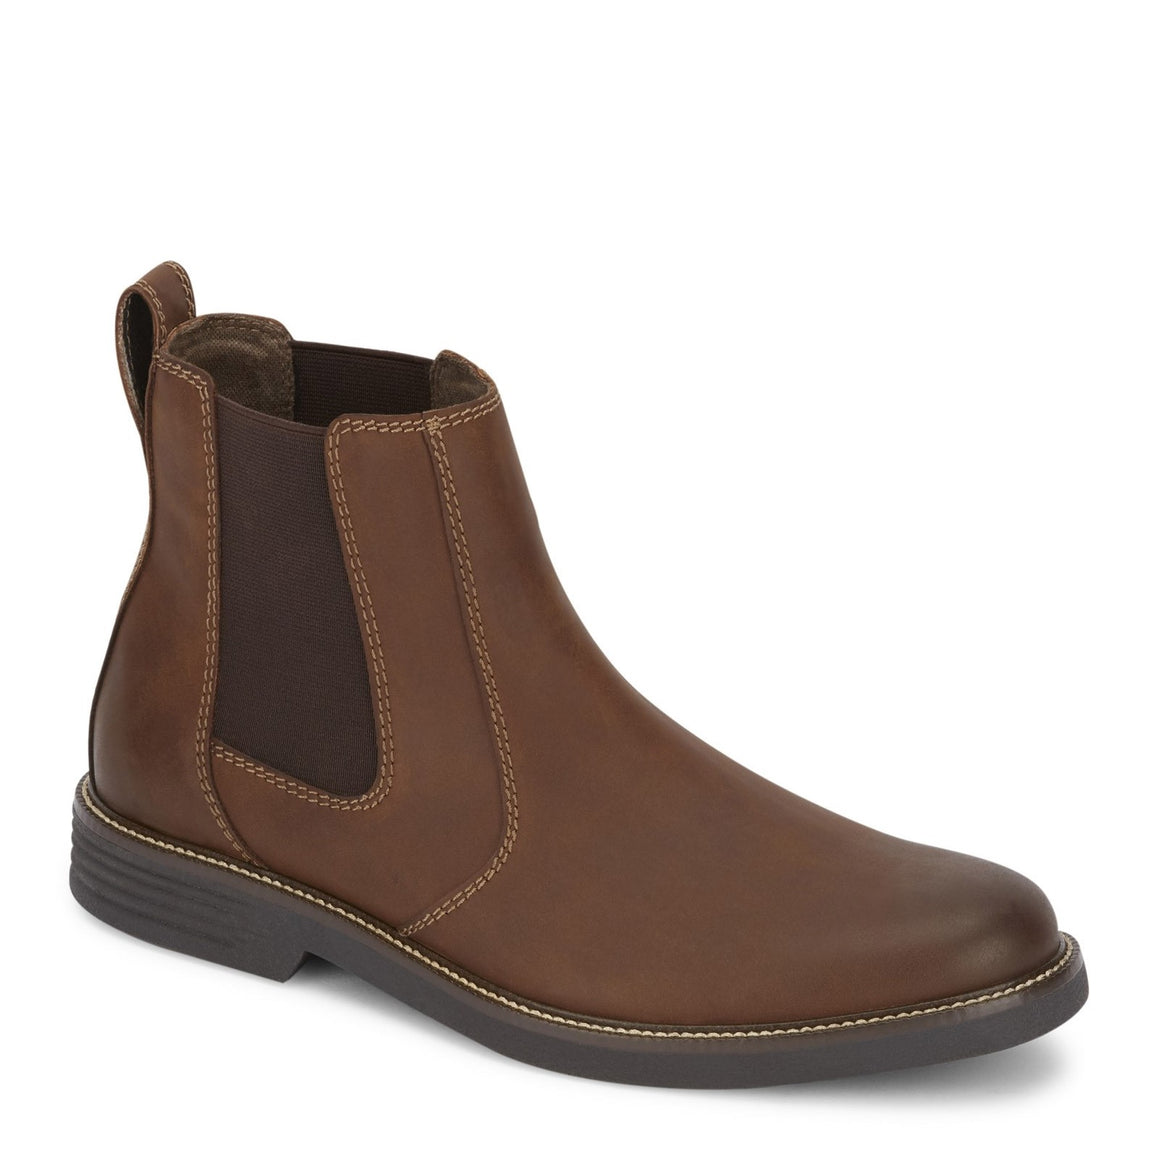 Dockers Men's Langford Boots - Brown 90-36638 - ShoeShackOnline